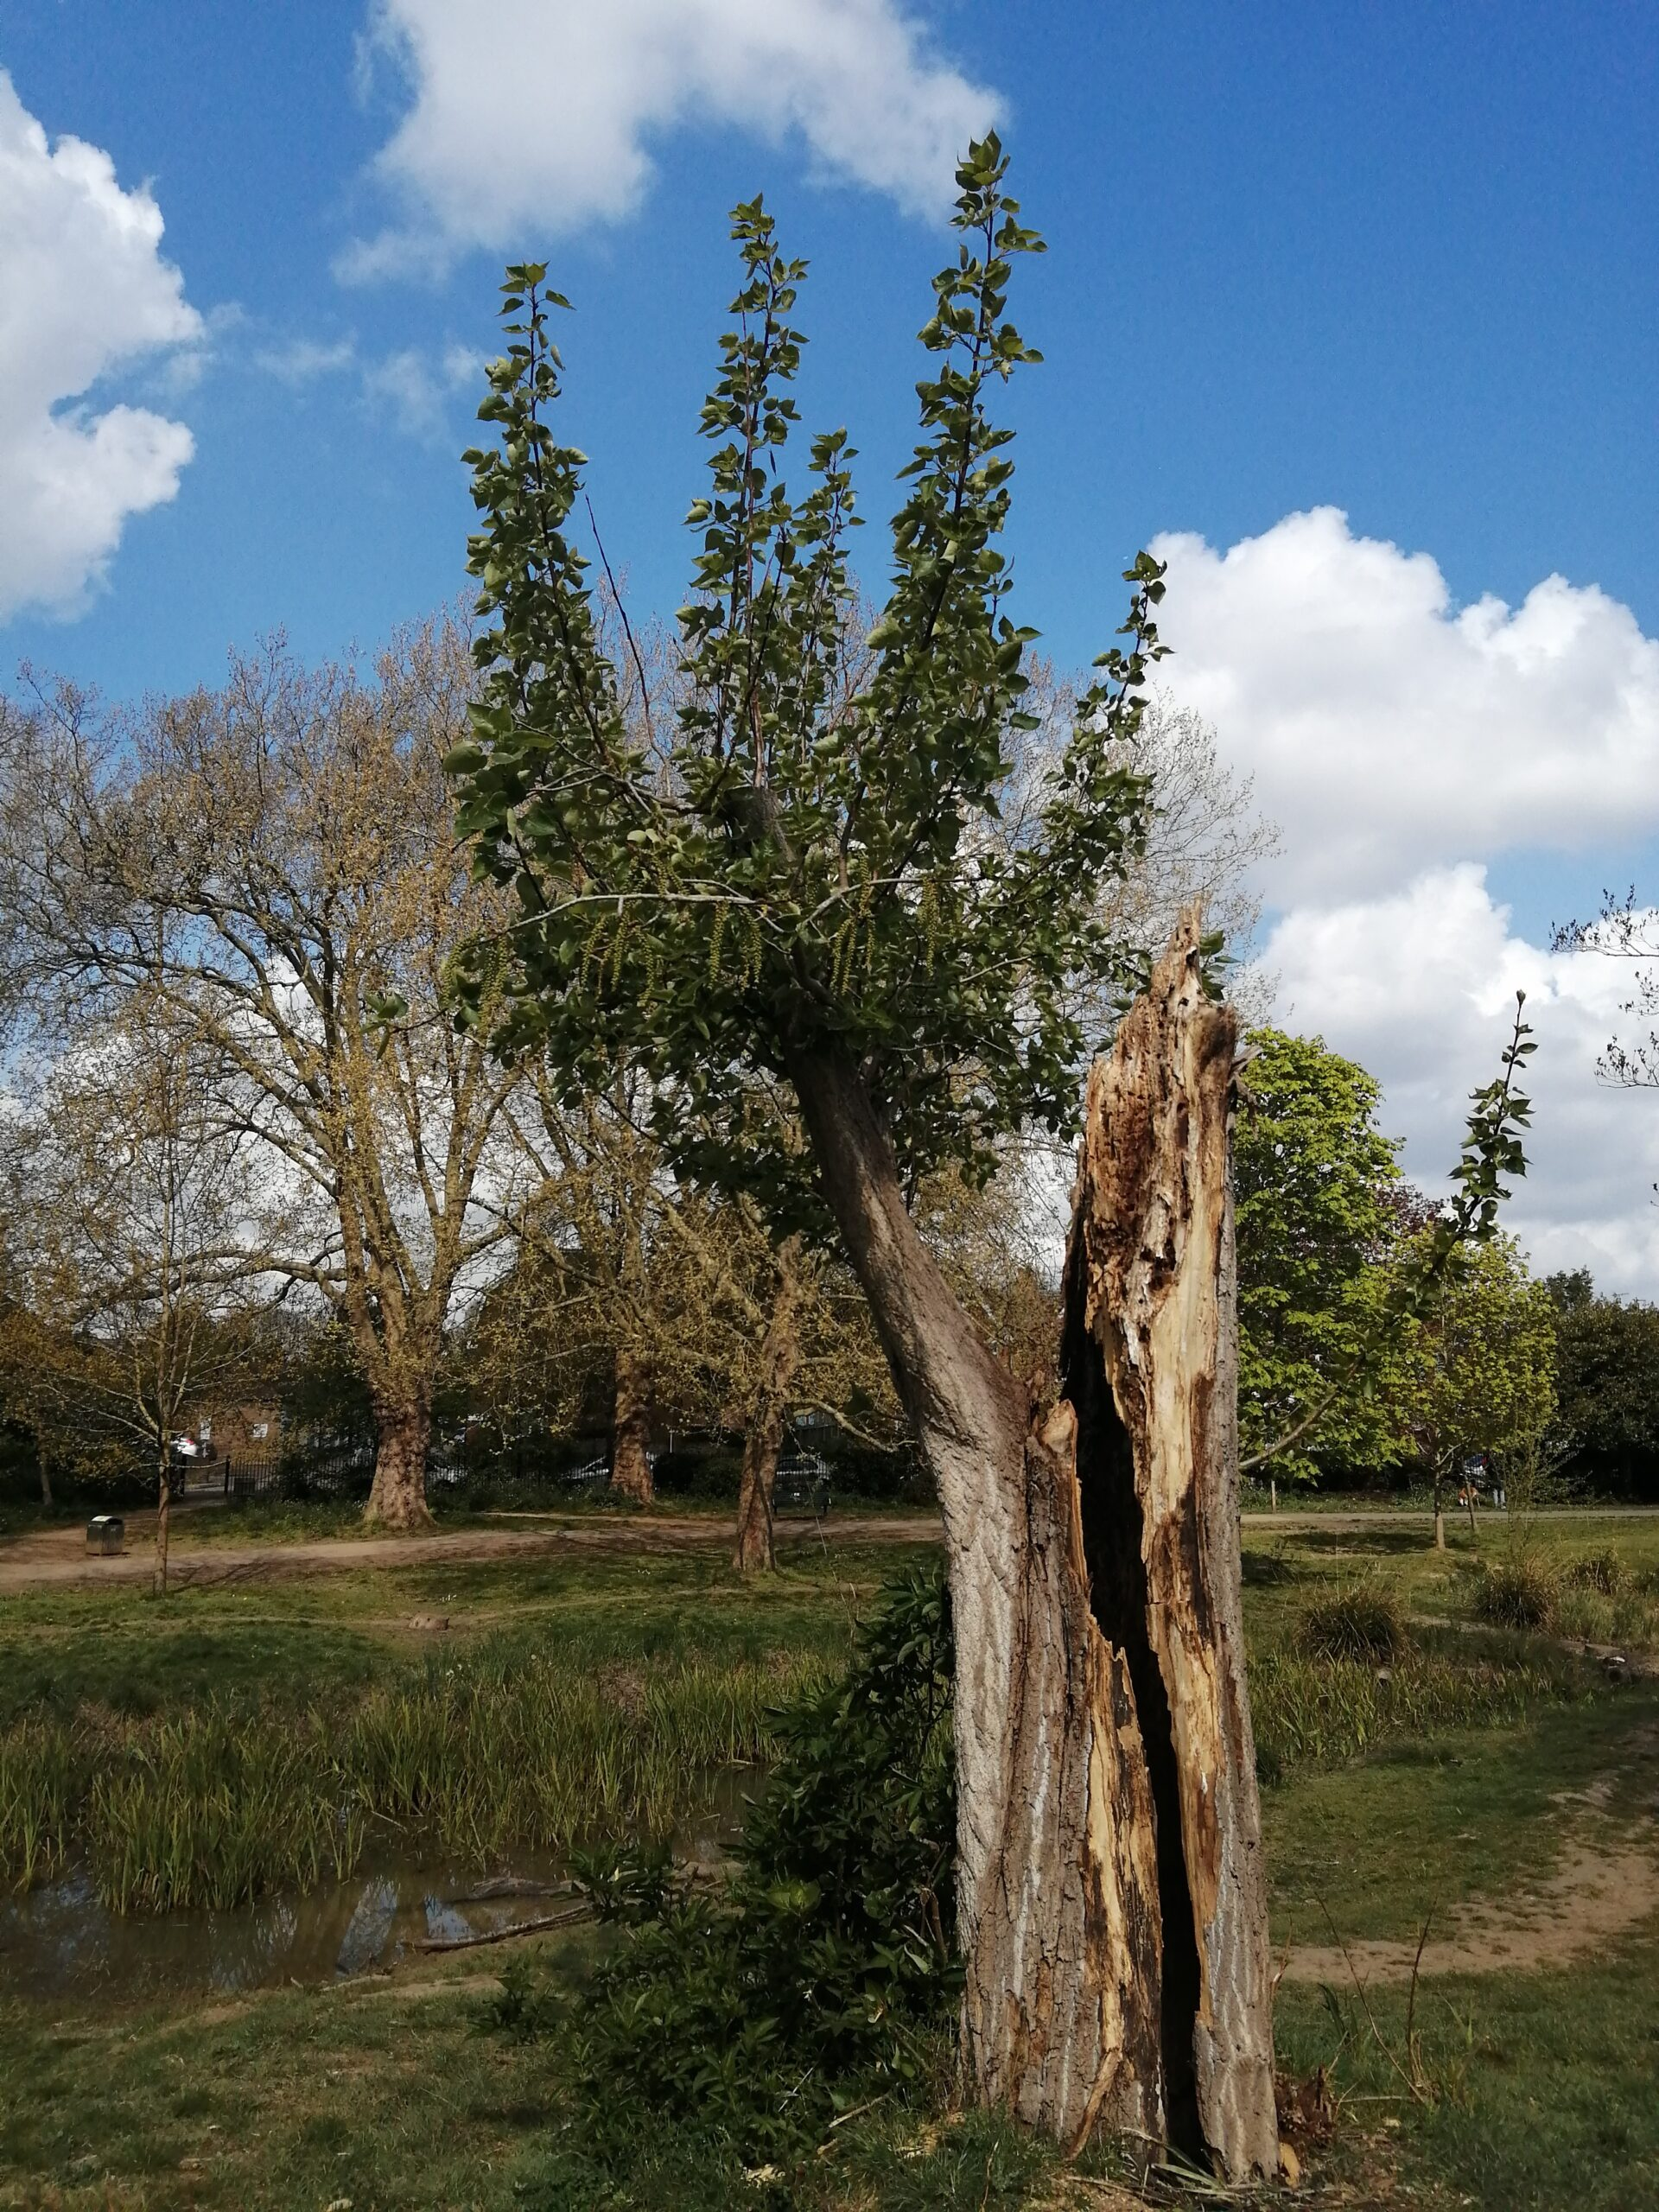 This is my favourite tree in Lammas Park. It was hurt. It healed and carries a scar. It has new life. This tree gives me hope and joy. It is a metaphor for survival, change and moving forward